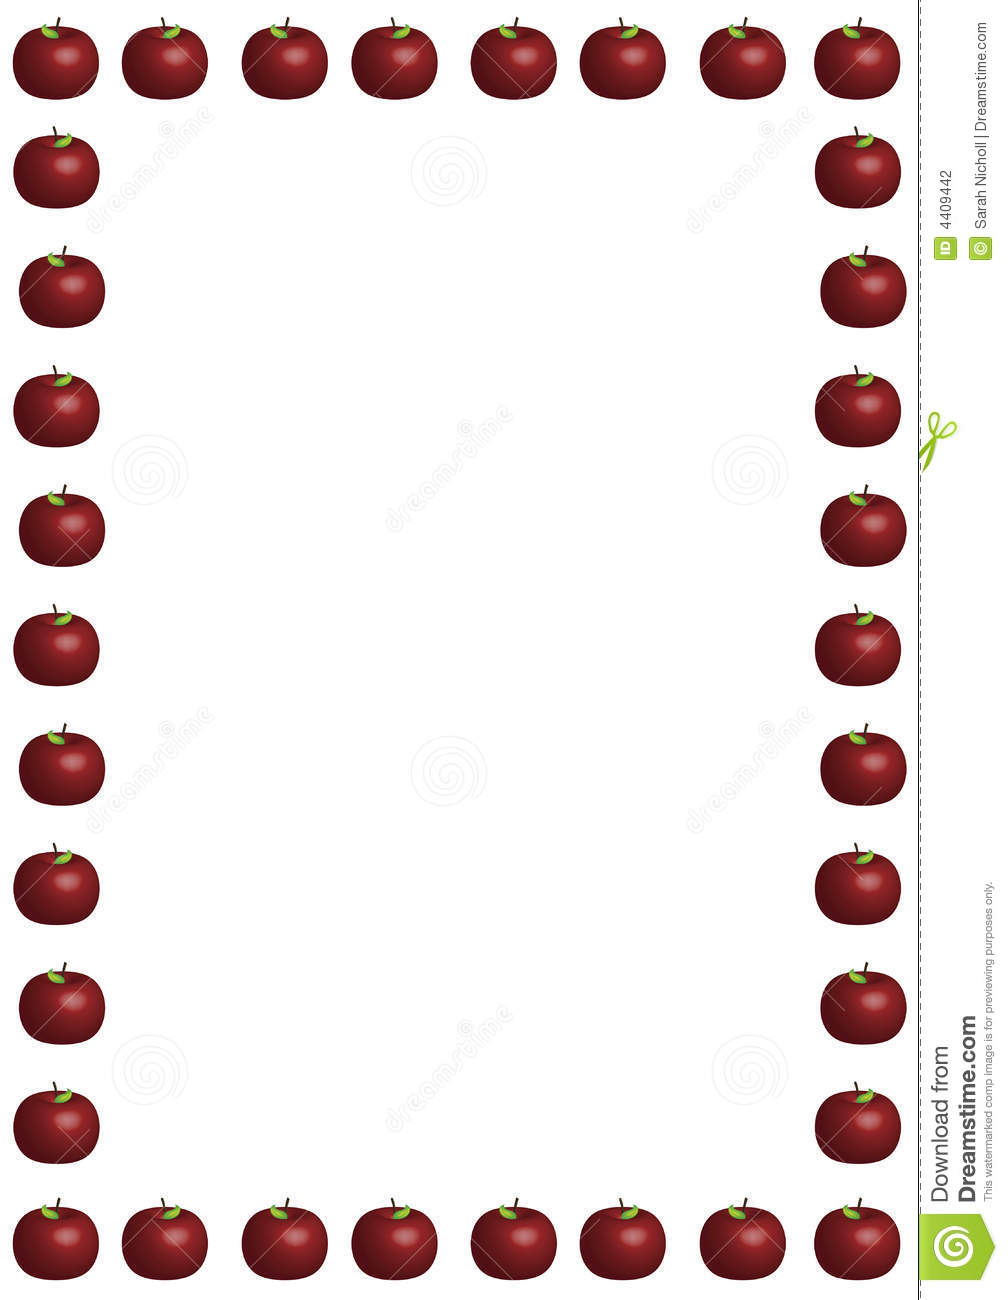 Illustrated border of large red apples on white background.